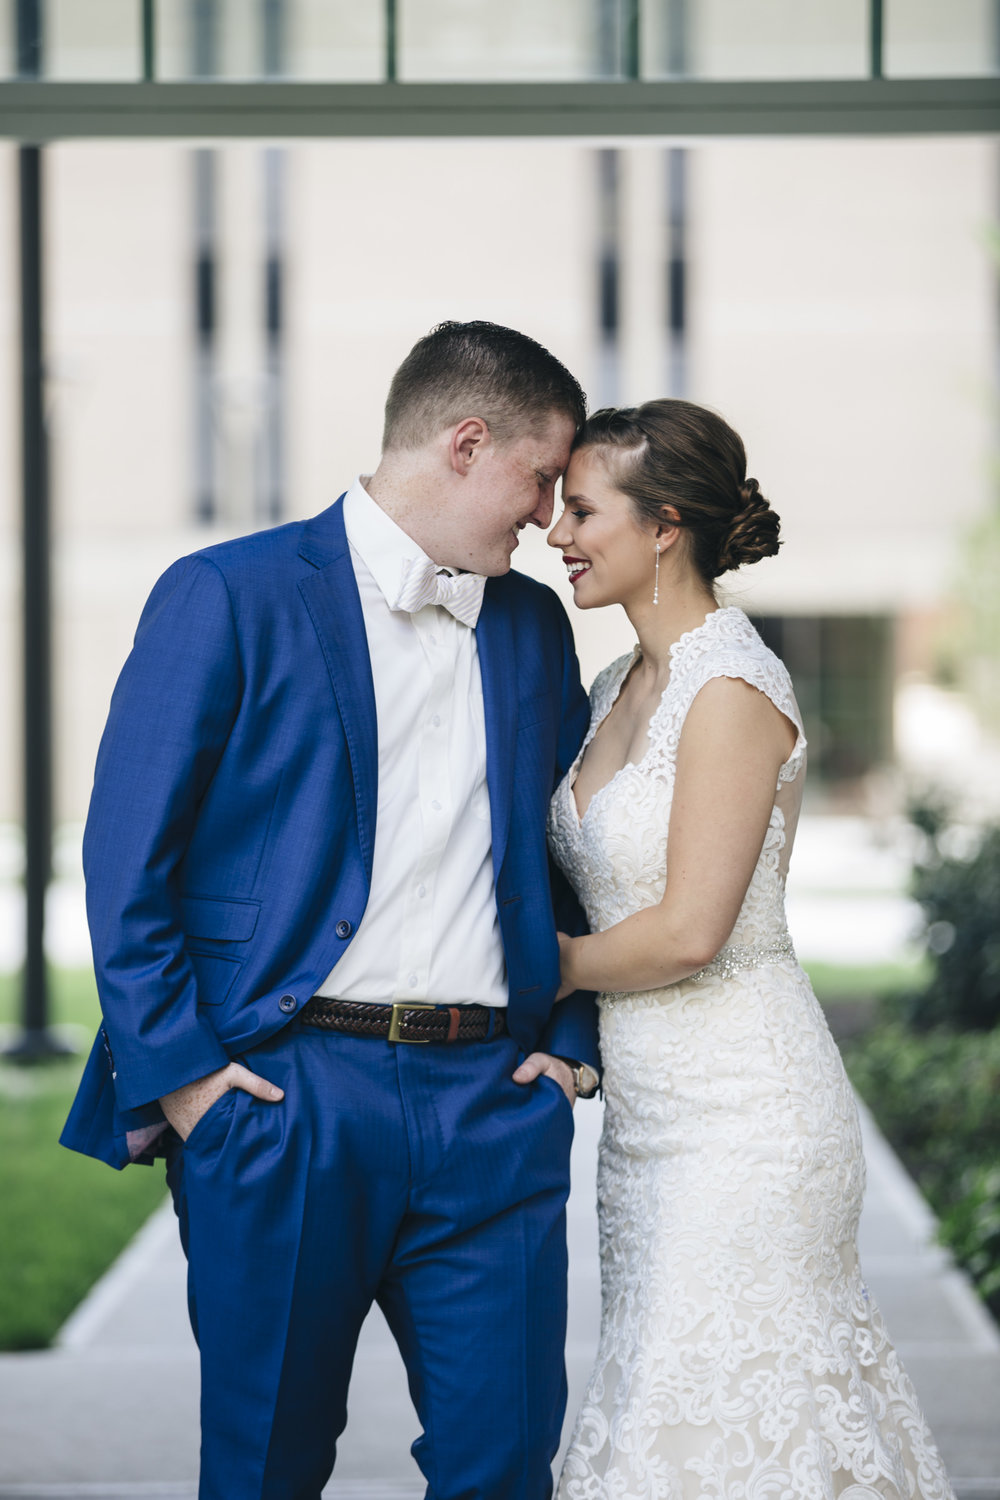 Bride and groom share an intimate moment before their wedding ceremony on Bowling Green Ohio's campus